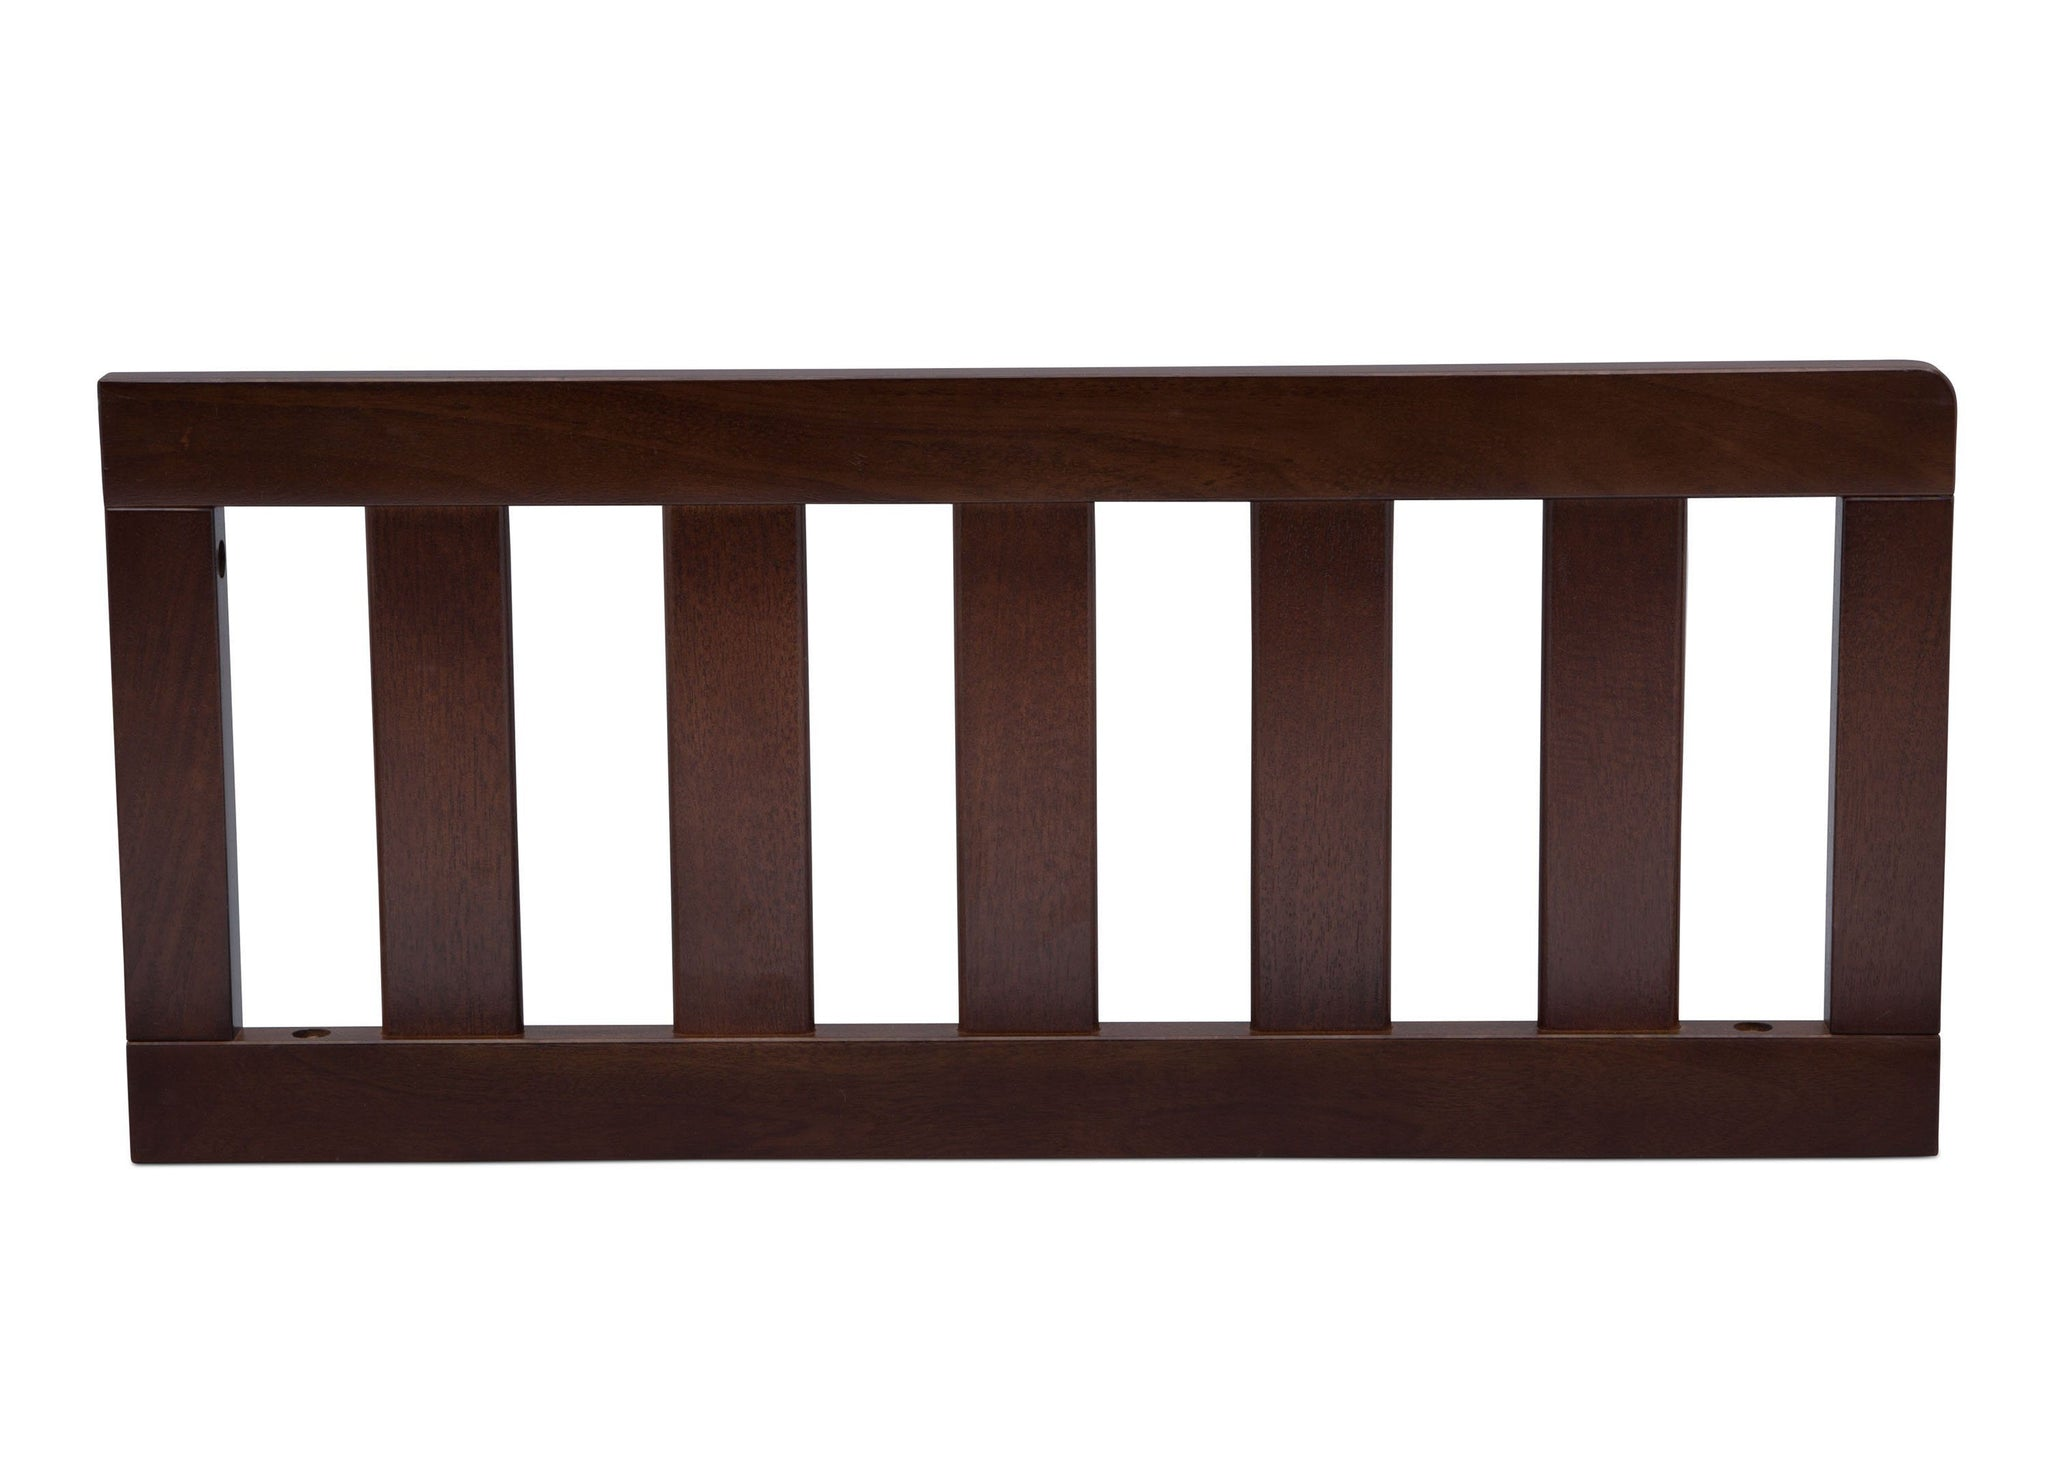 Serta Daybed/Toddler Guardrail Kit (707726) Walnut Espresso (1324) Front c3c